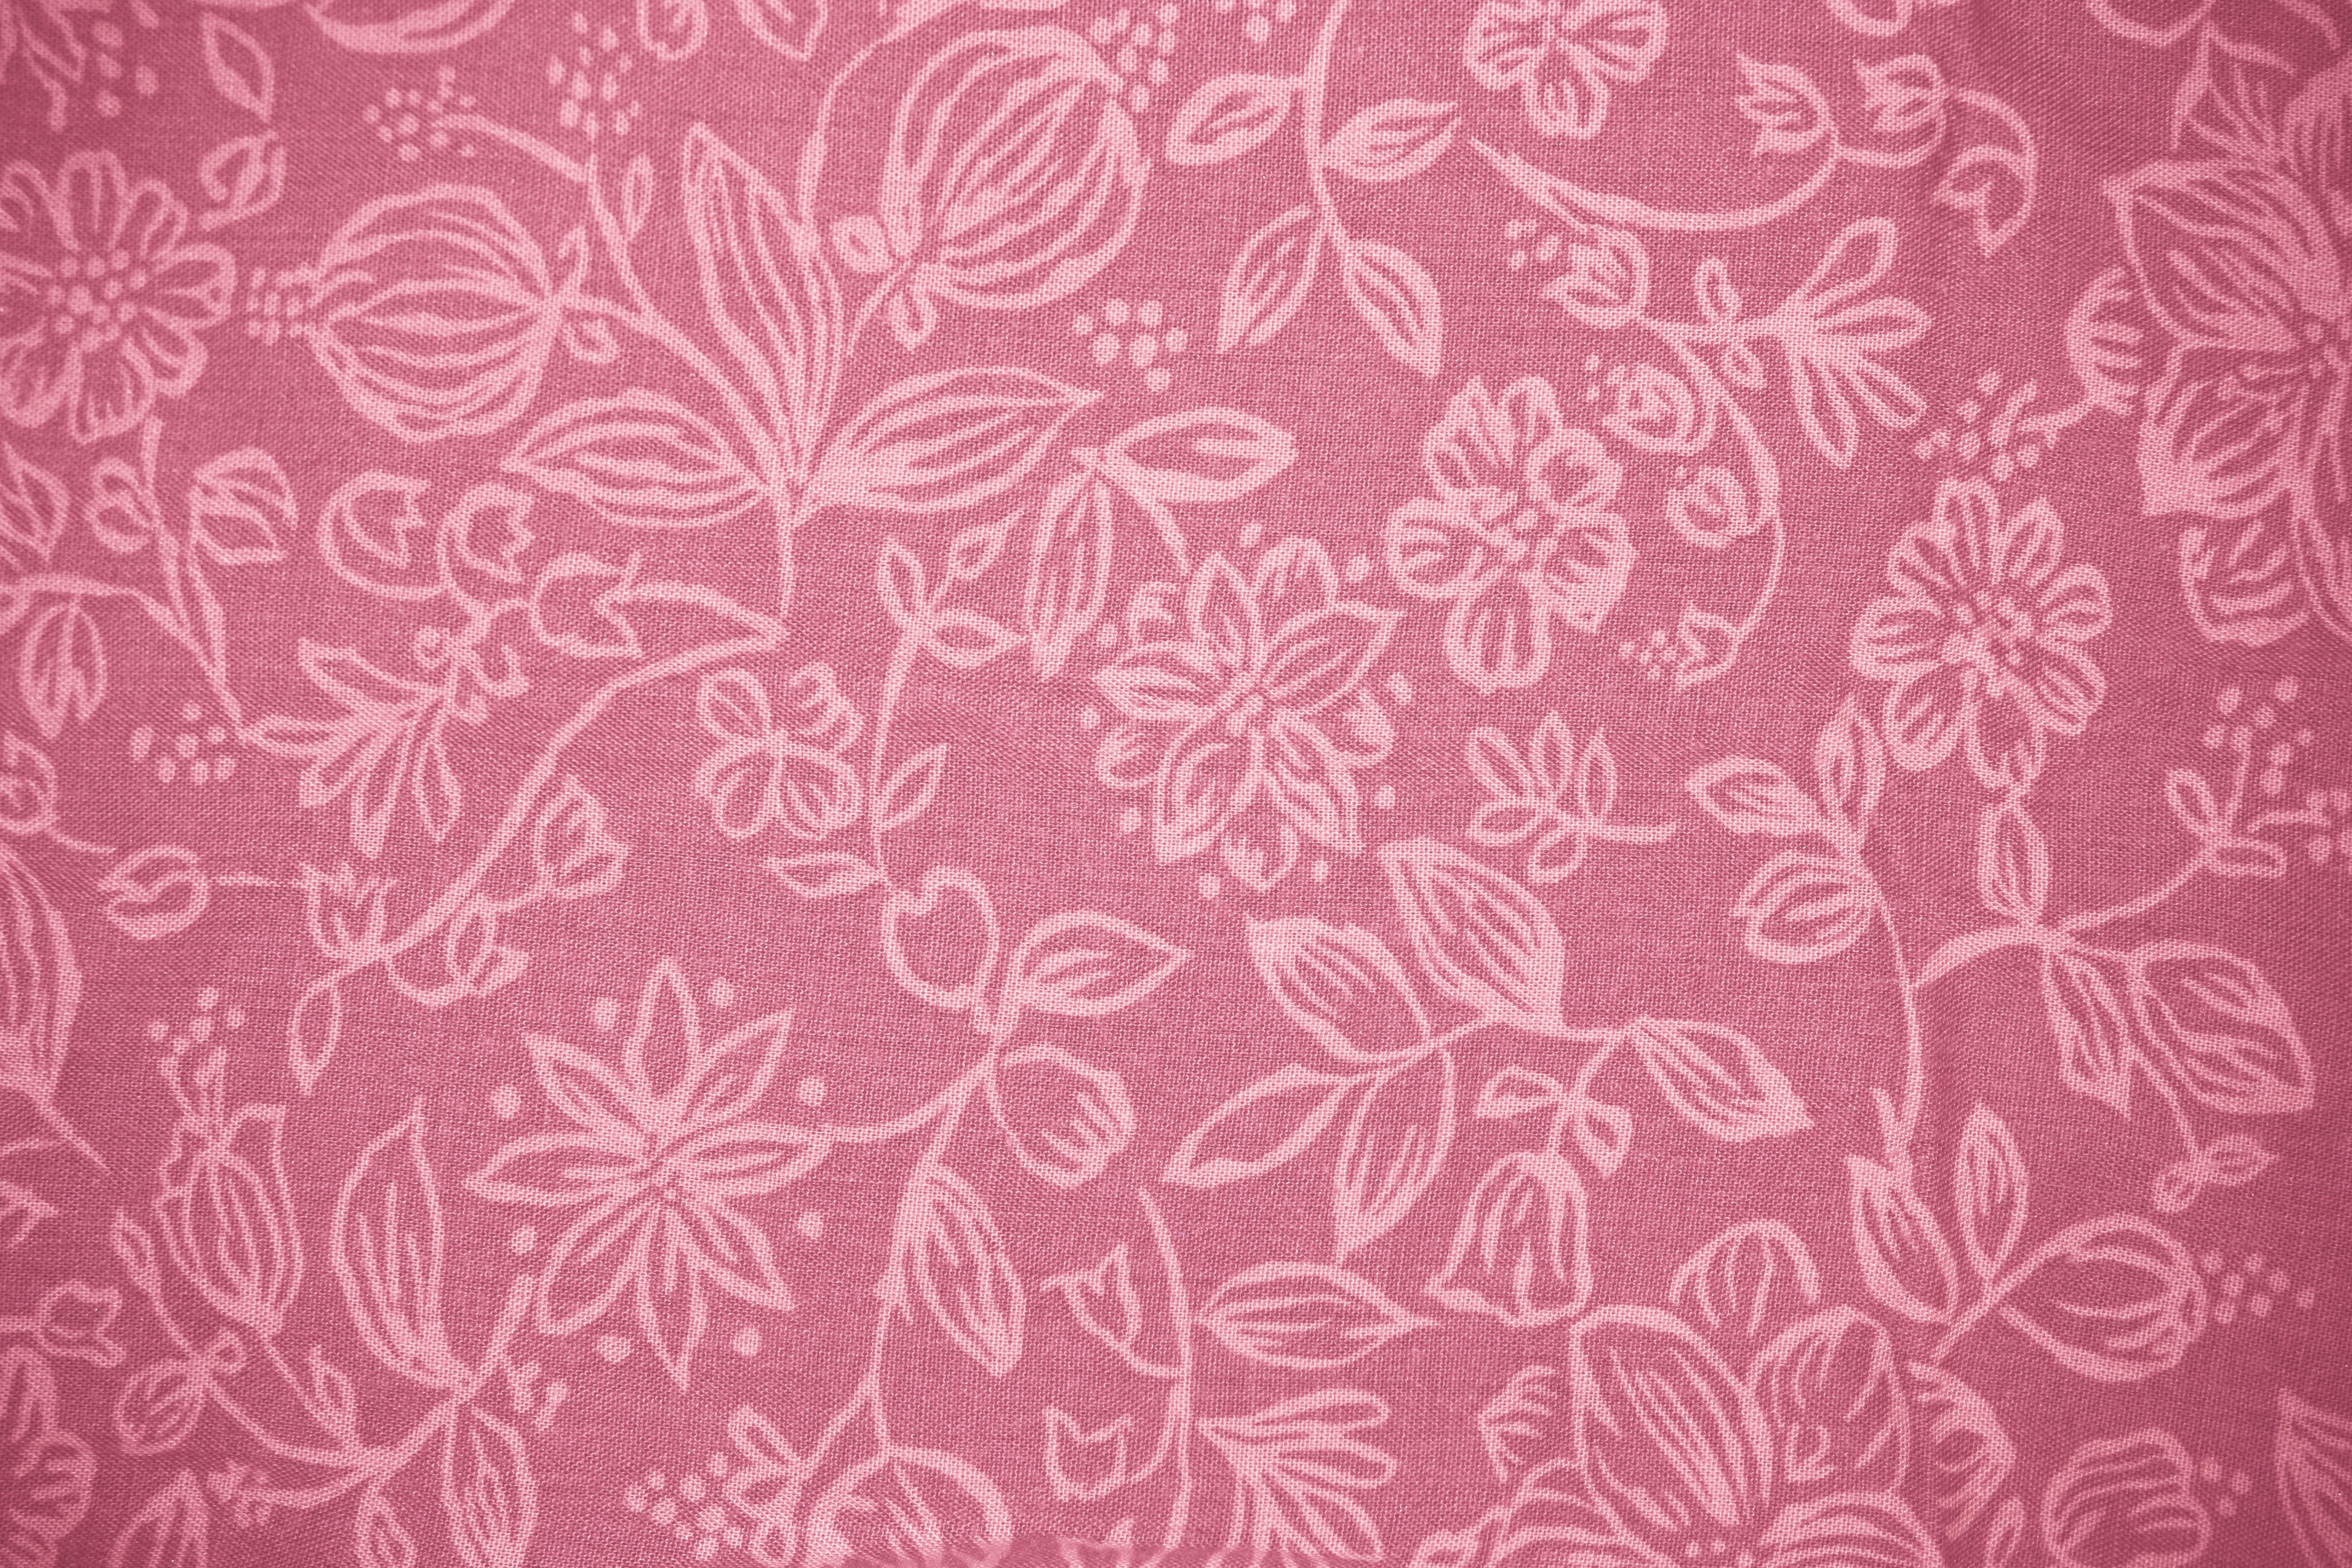 Coral Colored Fabric with Floral Pattern Texture Picture 3888x2592